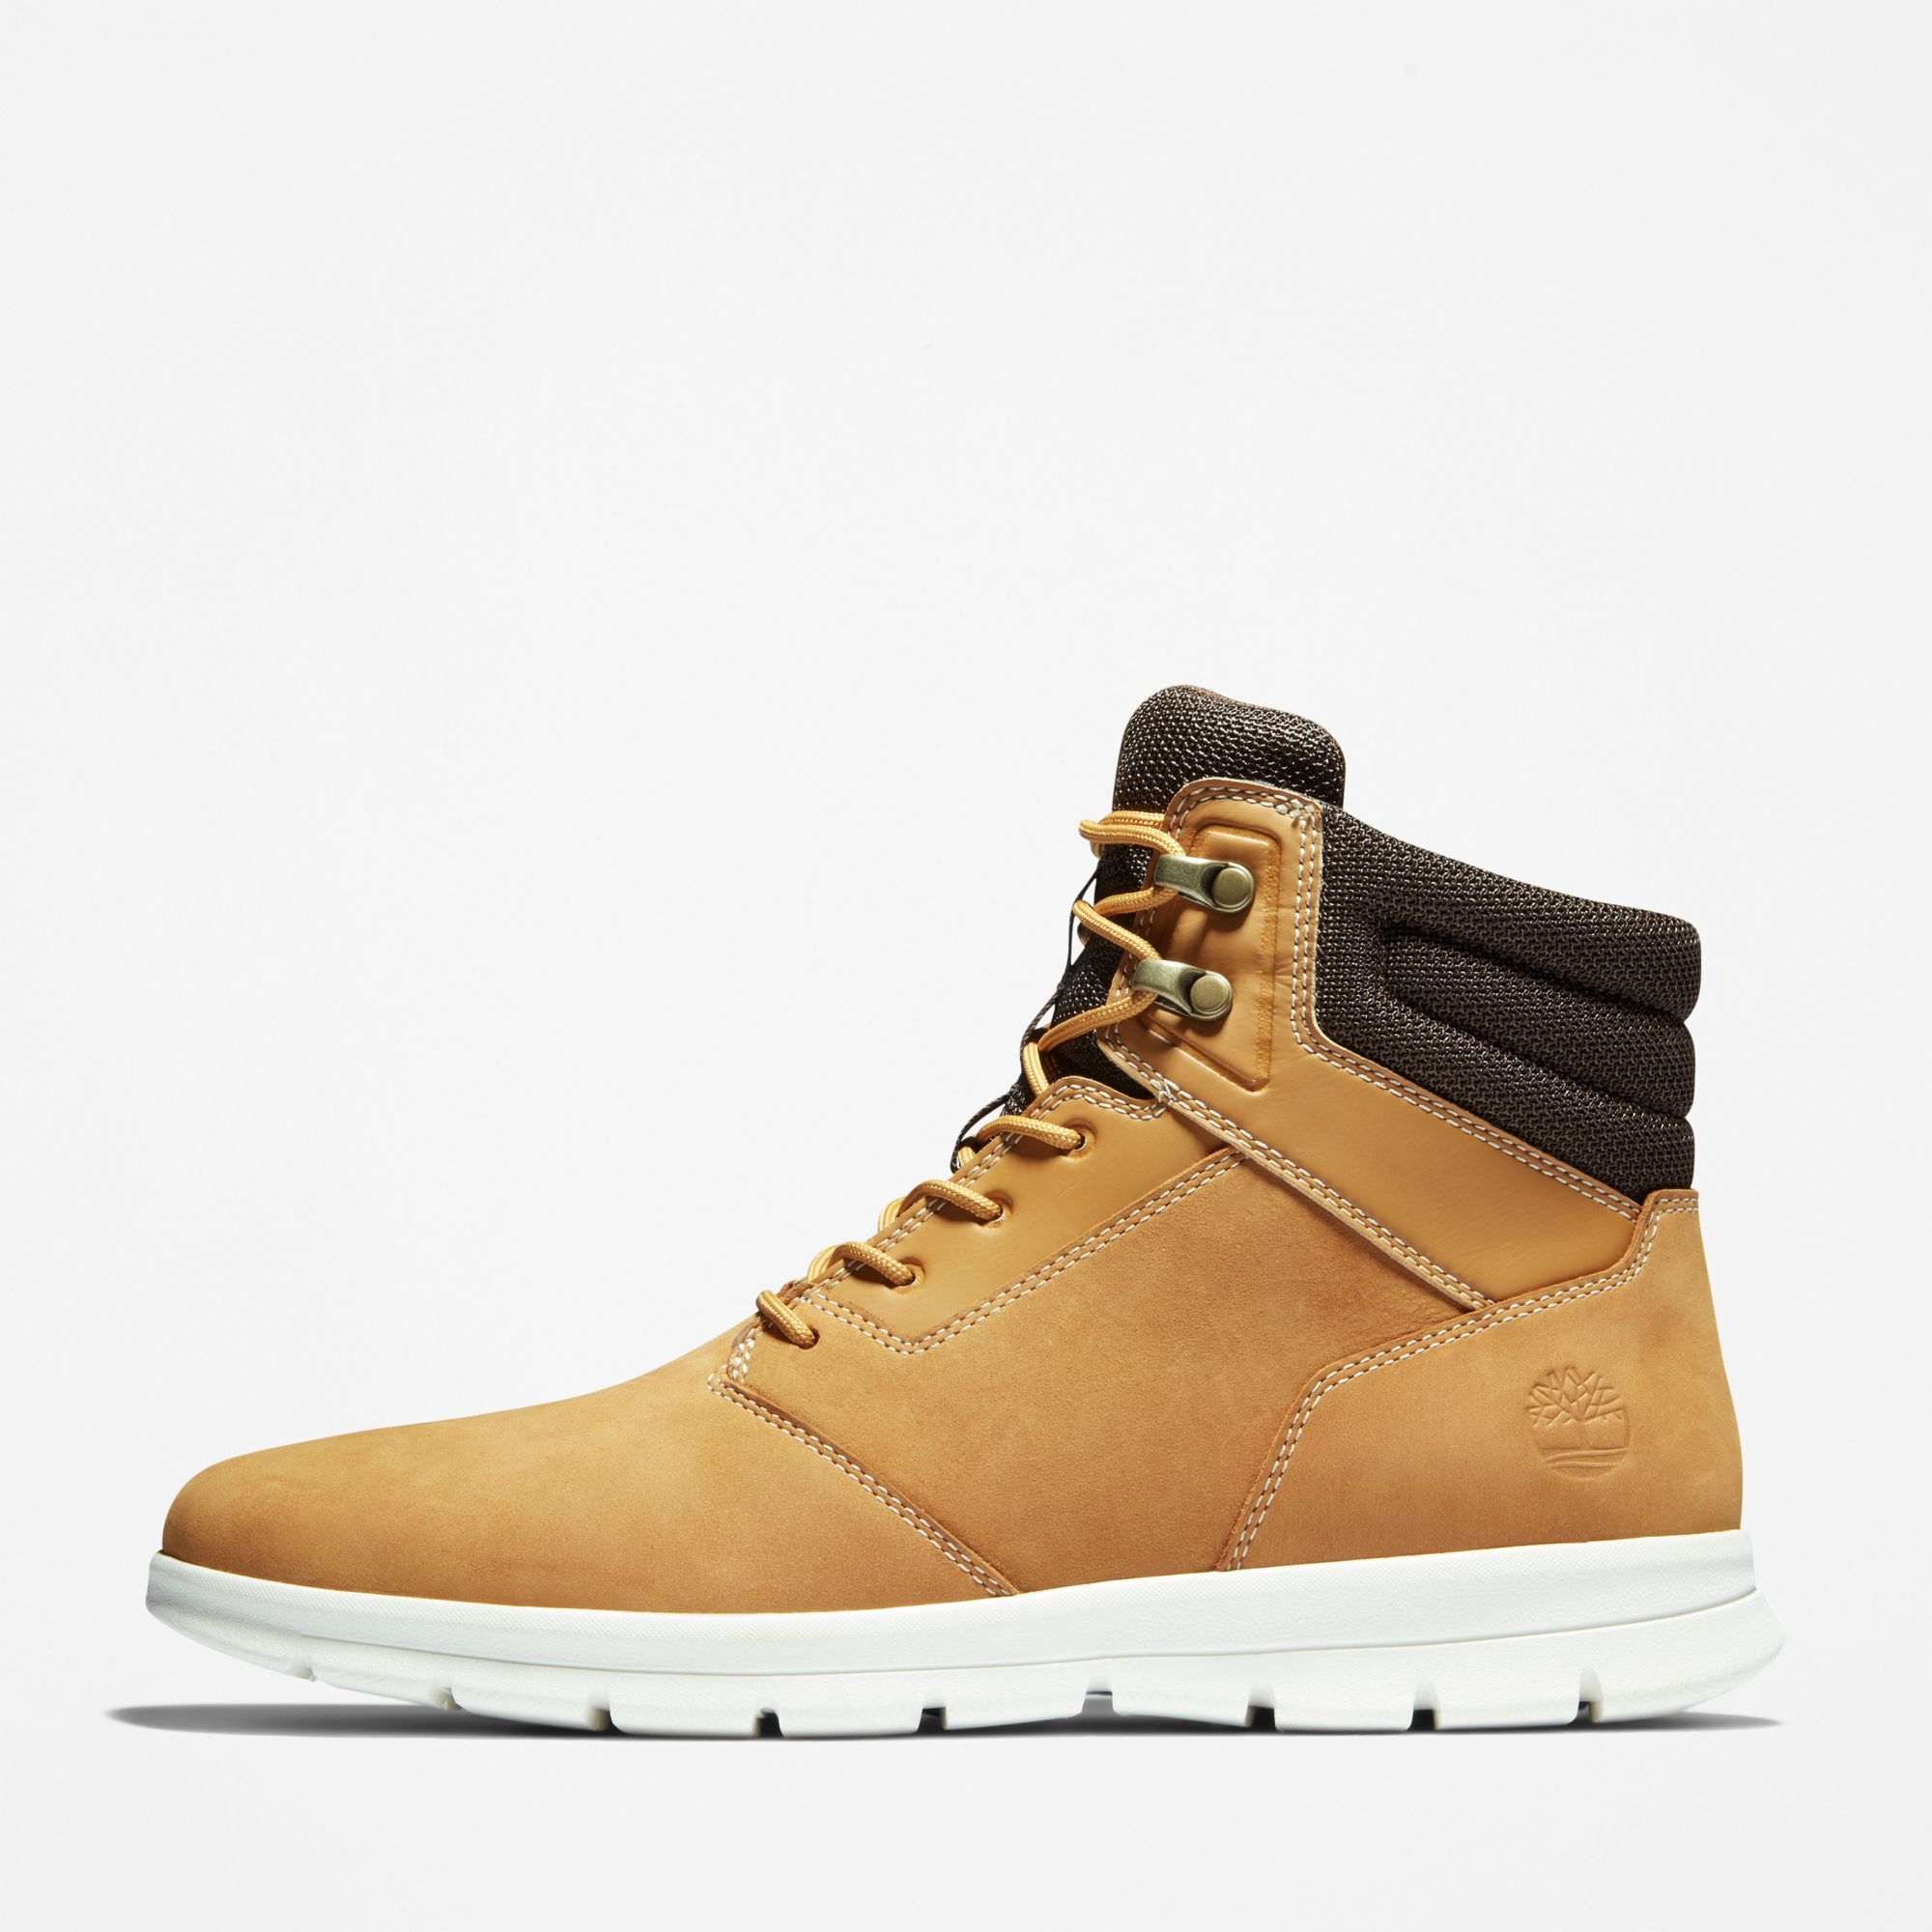 Timberland At The Men's Boot Yellow £110 Graydon Love Brands Sneaker qfwFZvrpxq